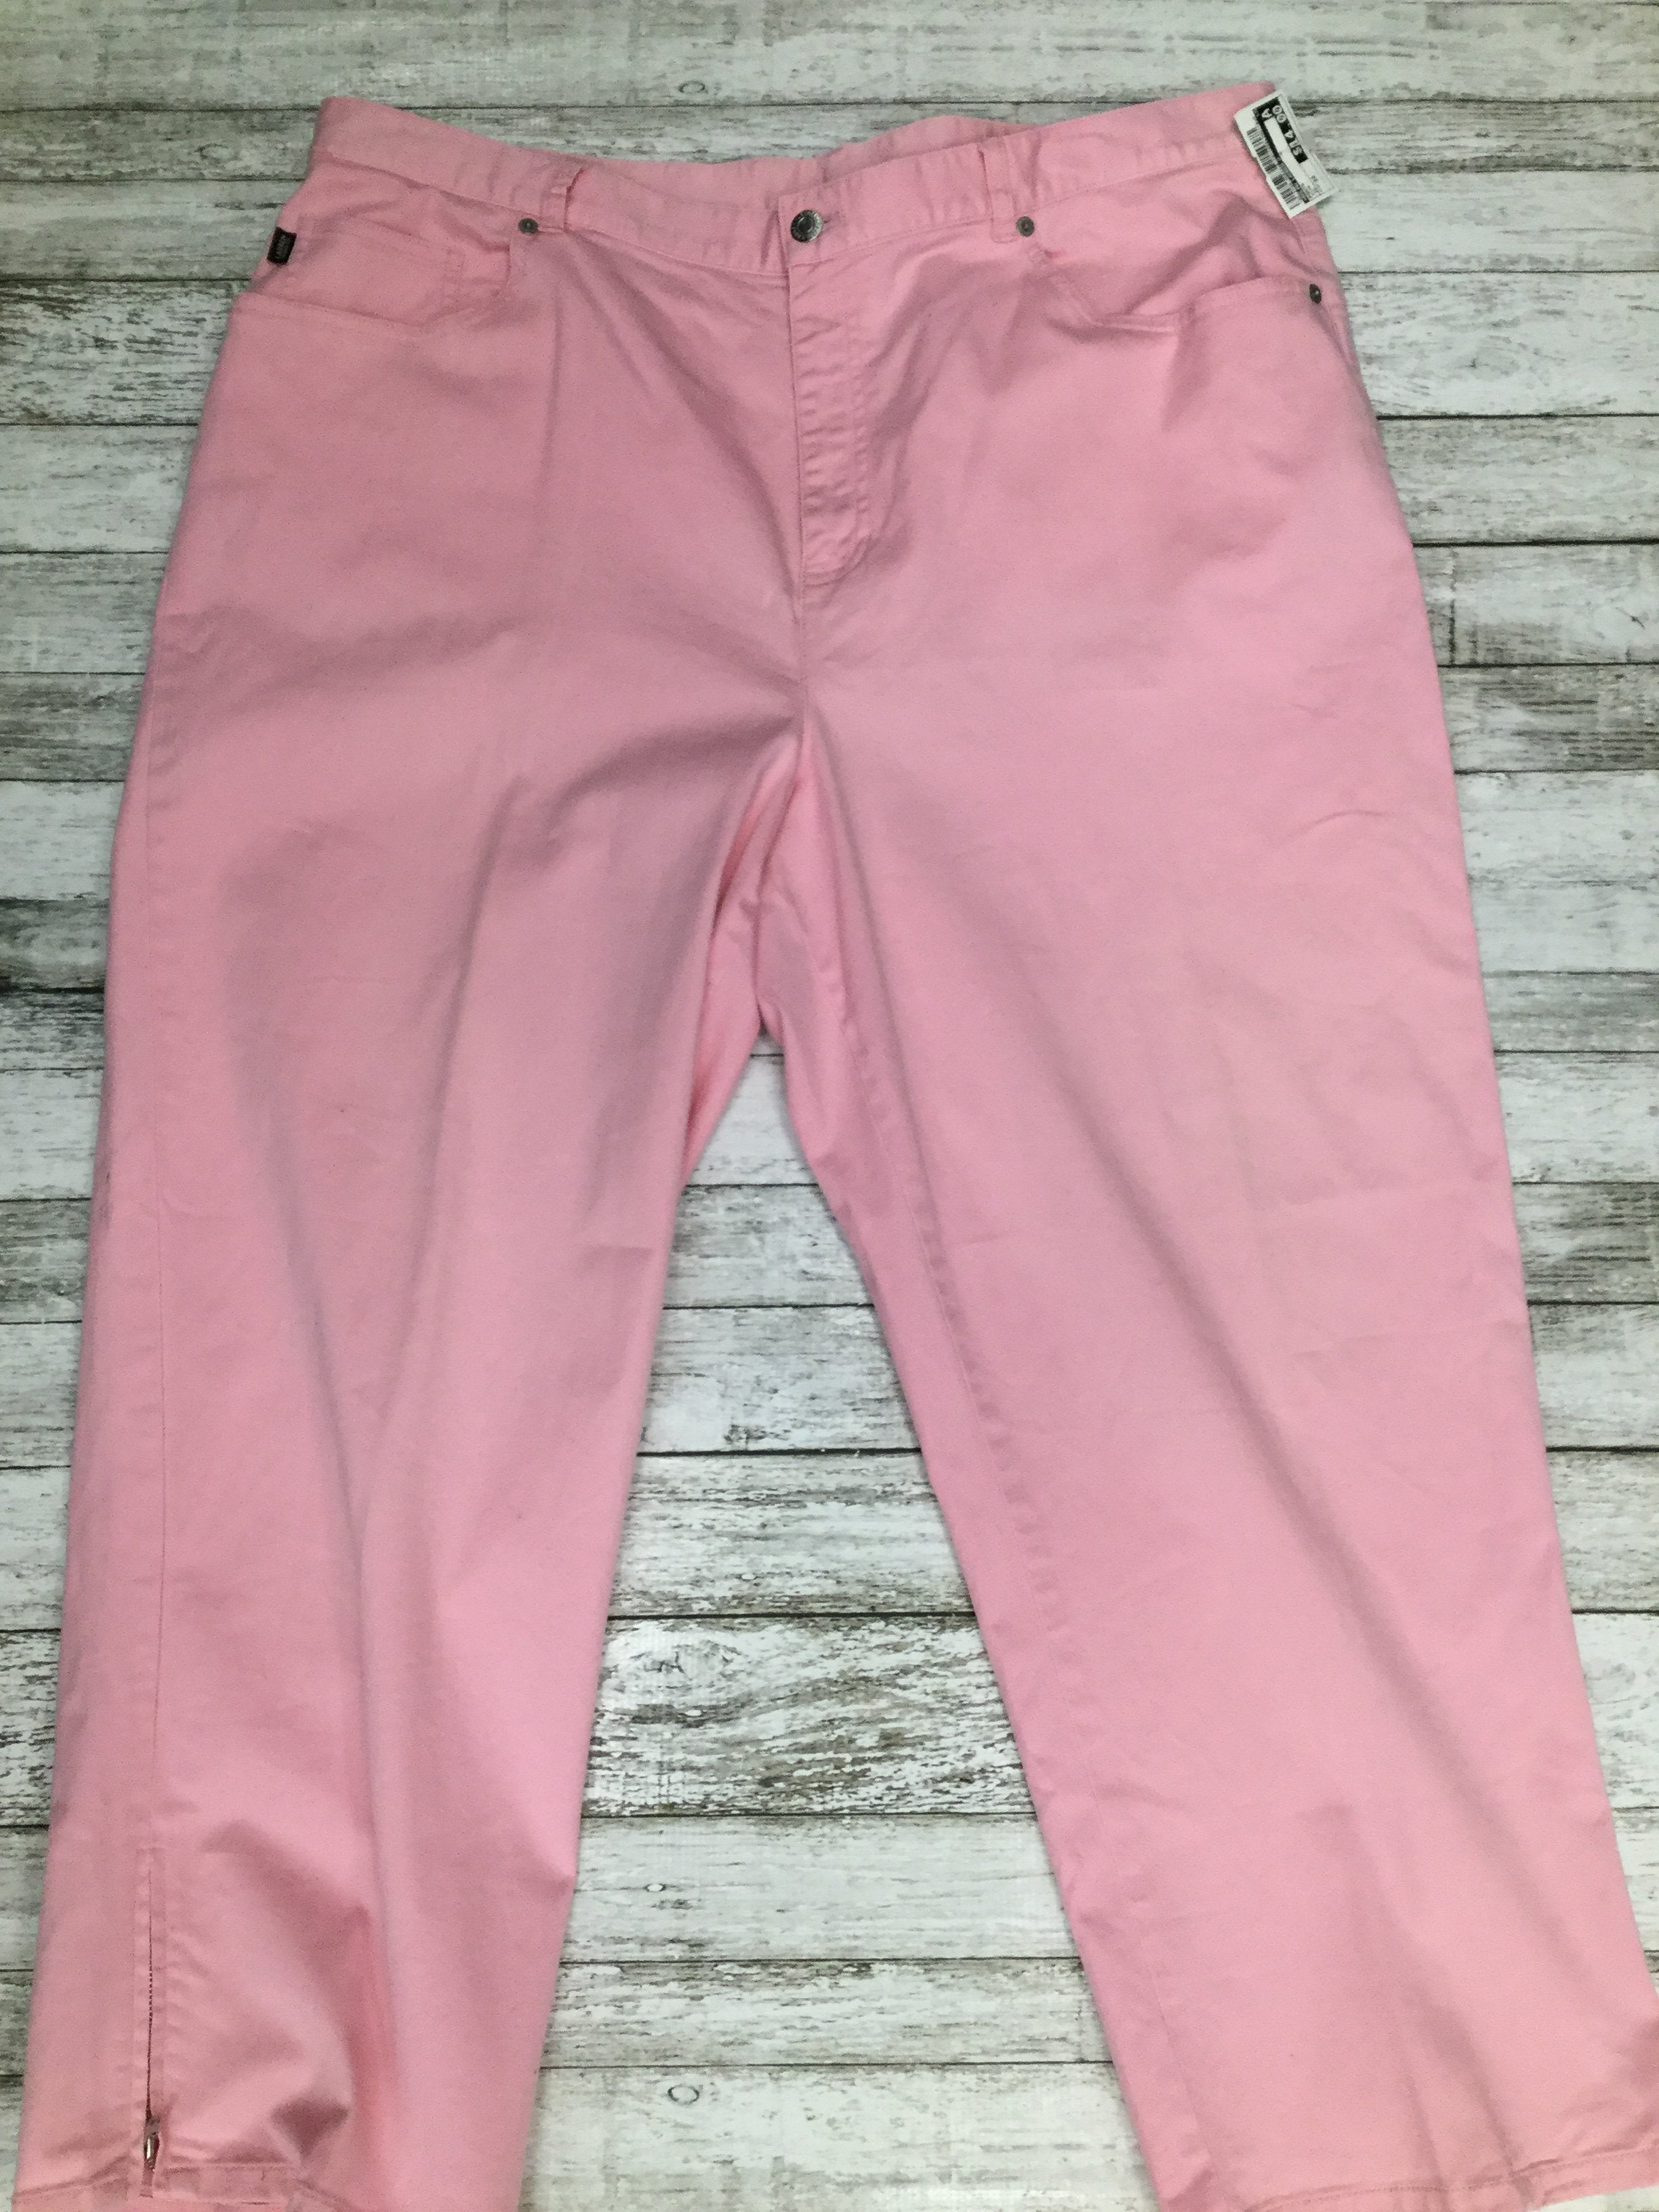 Primary Photo - BRAND: RALPH LAUREN O <BR>STYLE: PANTS <BR>COLOR: PINK <BR>SIZE: 22 <BR>SKU: 105-2768-29543